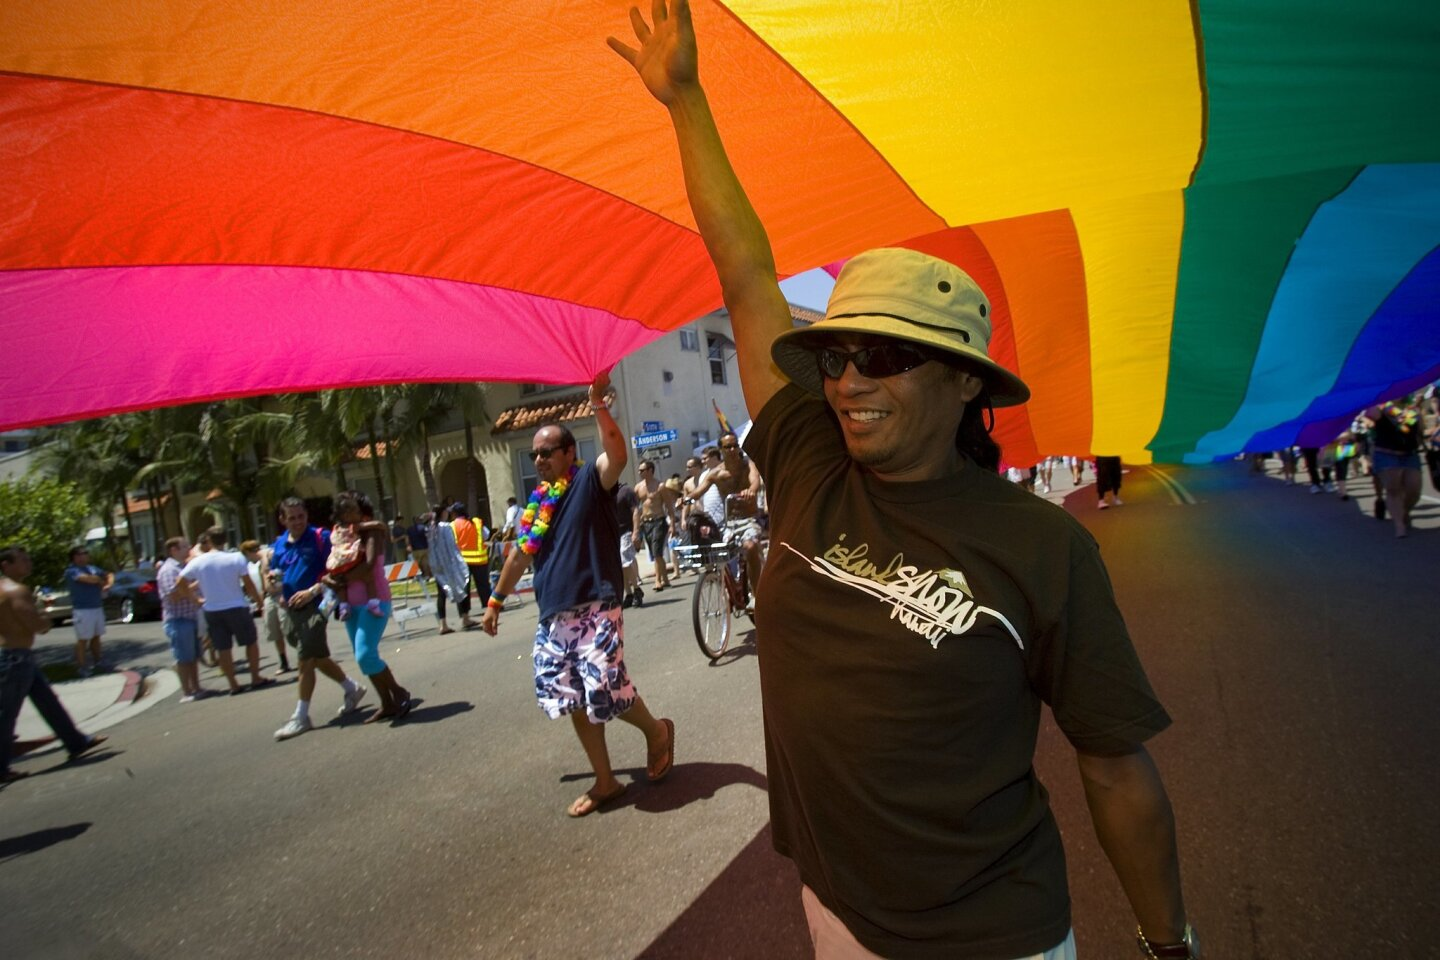 San Diego's annual Pride Parade and Festival is this weekend